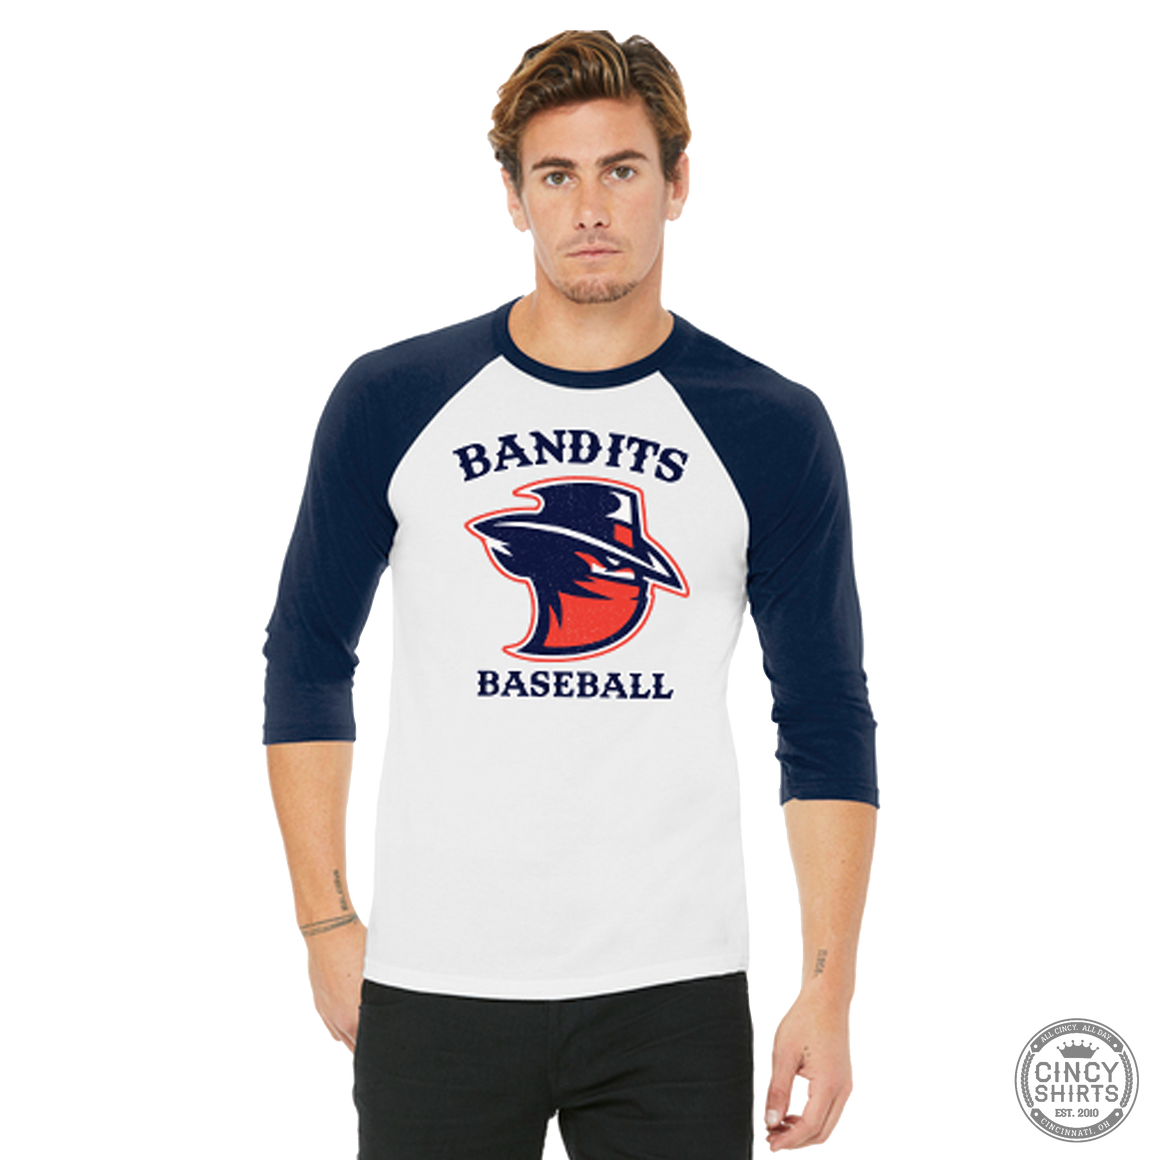 Northern Kentucky Bandits Baseball - Adult Raglan Baseball Tee